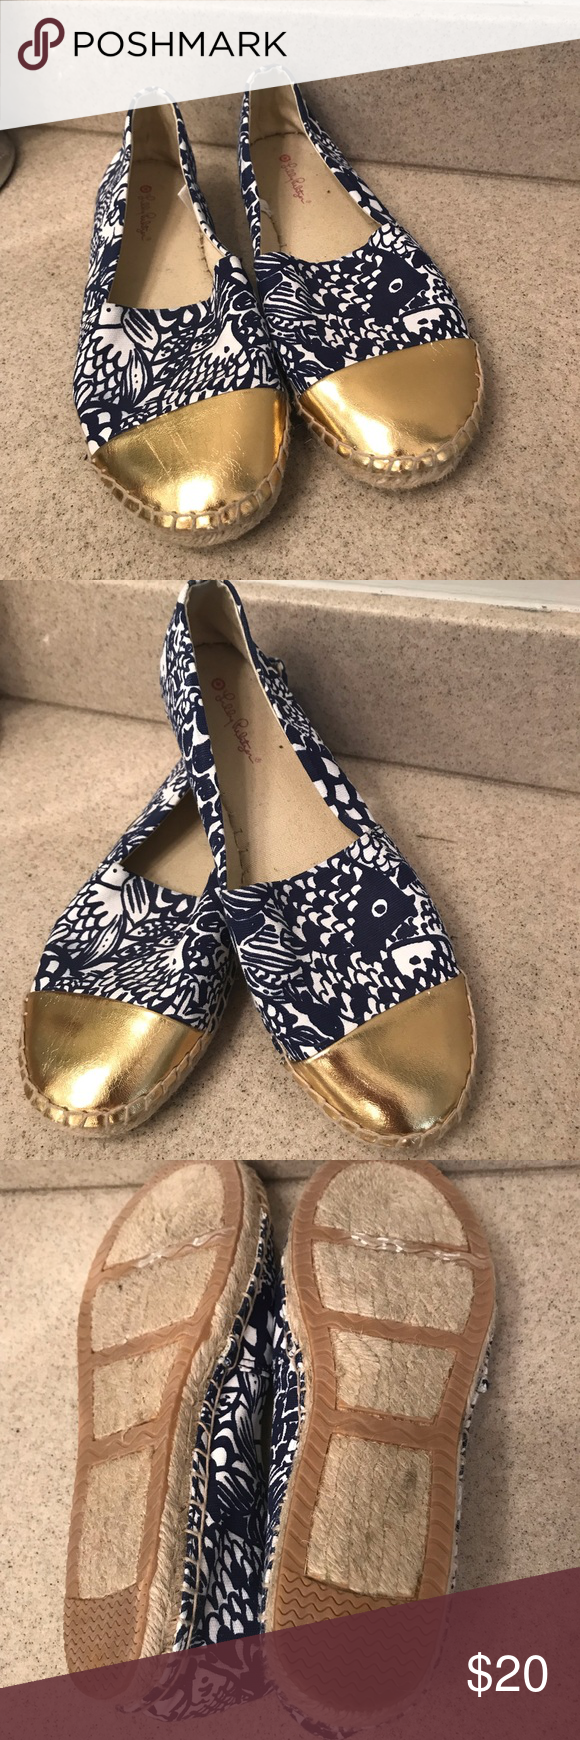 136e11fce35b18 Lilly Pulitzer For Target Upstream Espadrilles Marvelous pair of Lilly  espadrilles with gold toe and whimsical